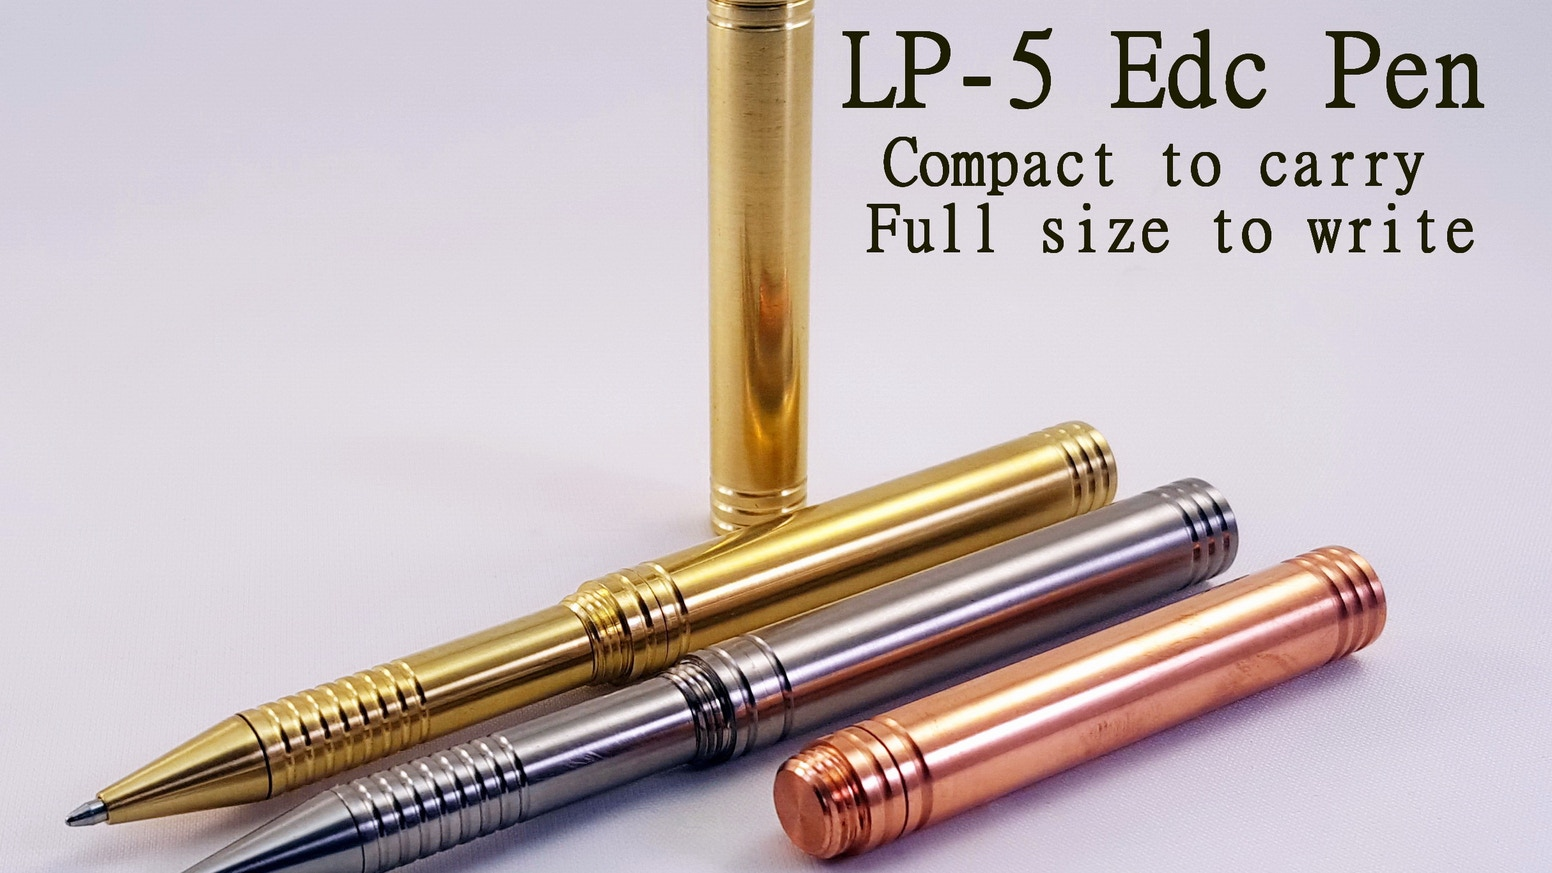 Compact pen that does not sacrifice writing comfort